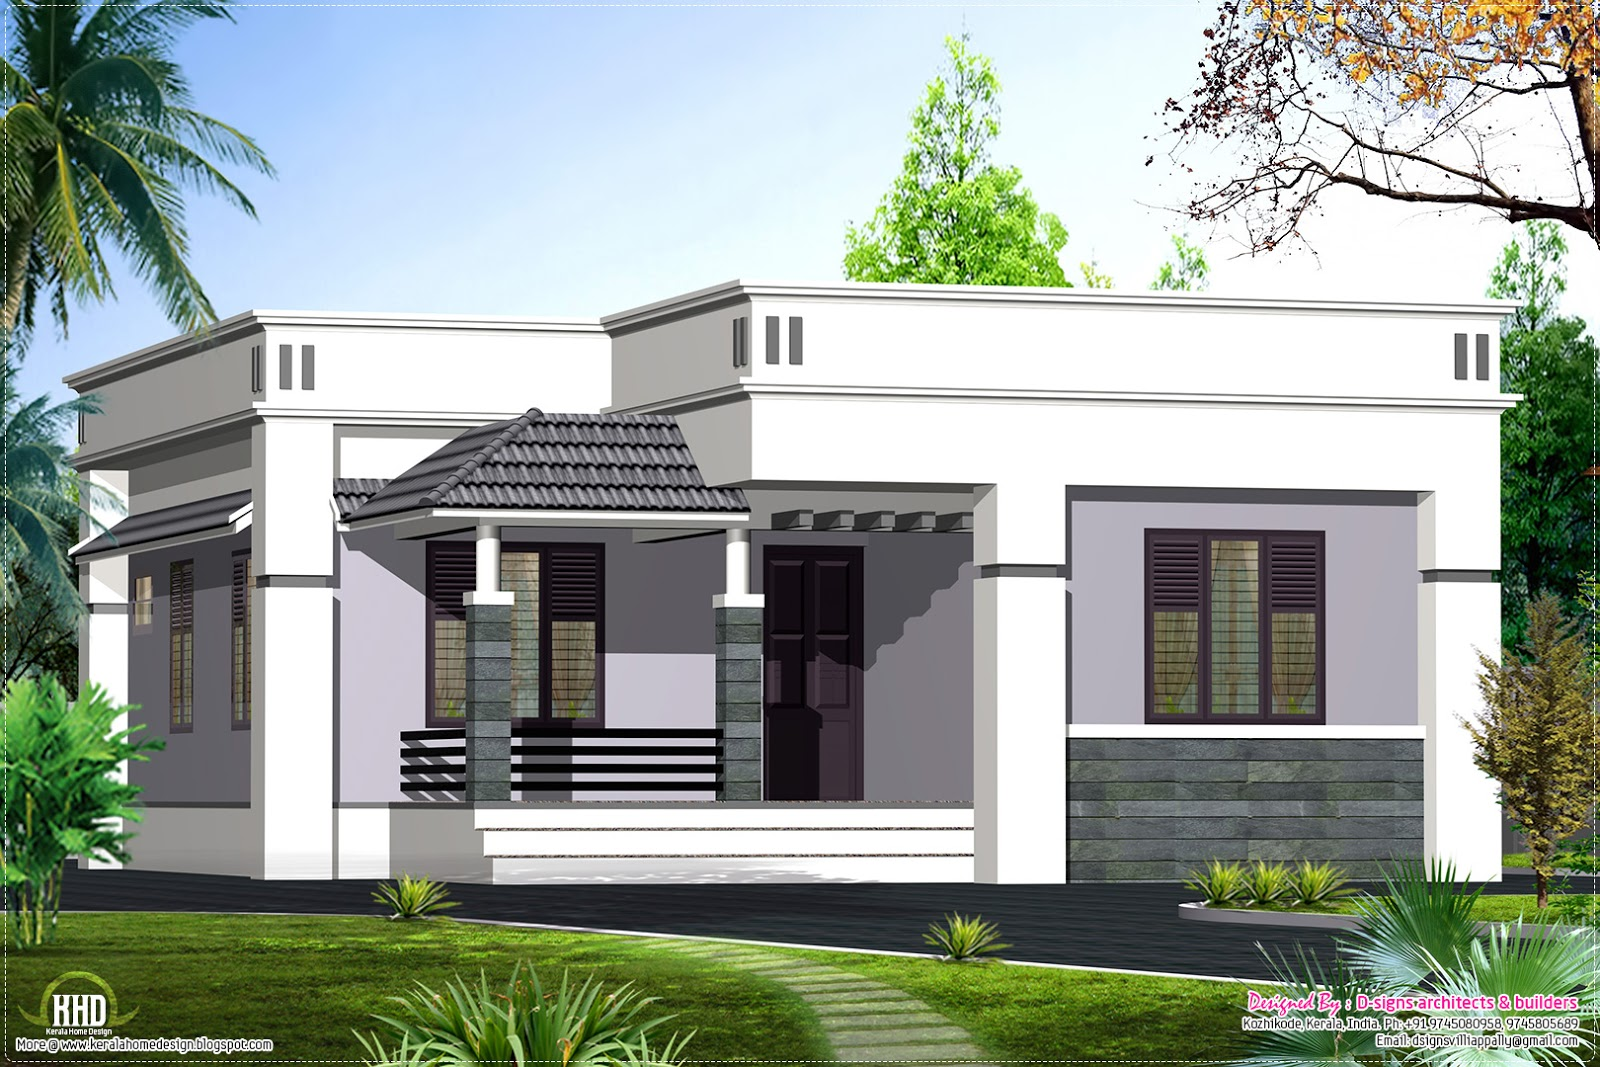 House Desings Amazing 35 Small And Simple But Beautiful House With Roof Deck Design Inspiration